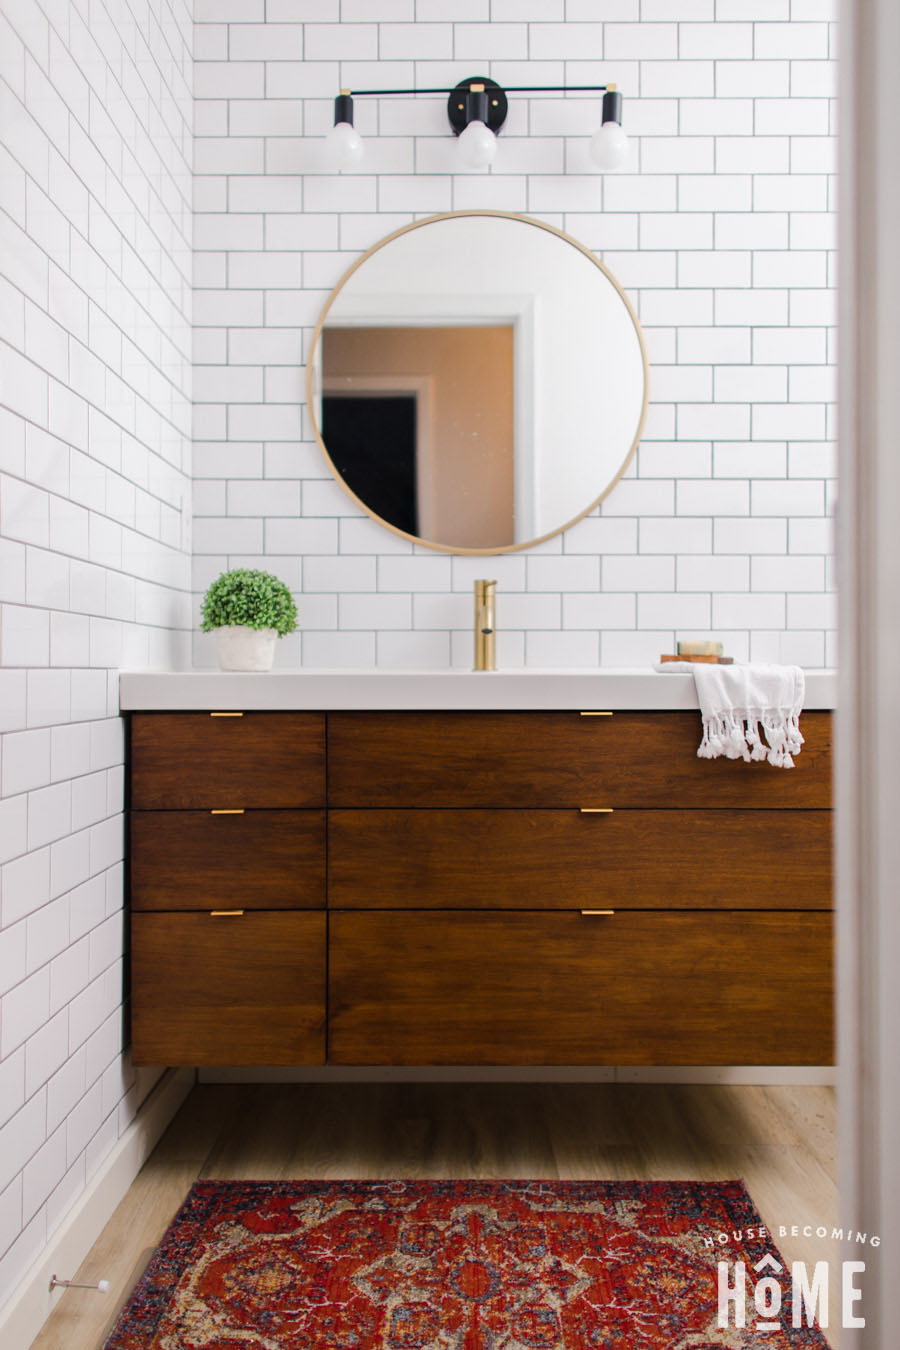 Build A Bathroom Vanity Cabinet For Ikea Odensvik Sink Counter House Becoming Home